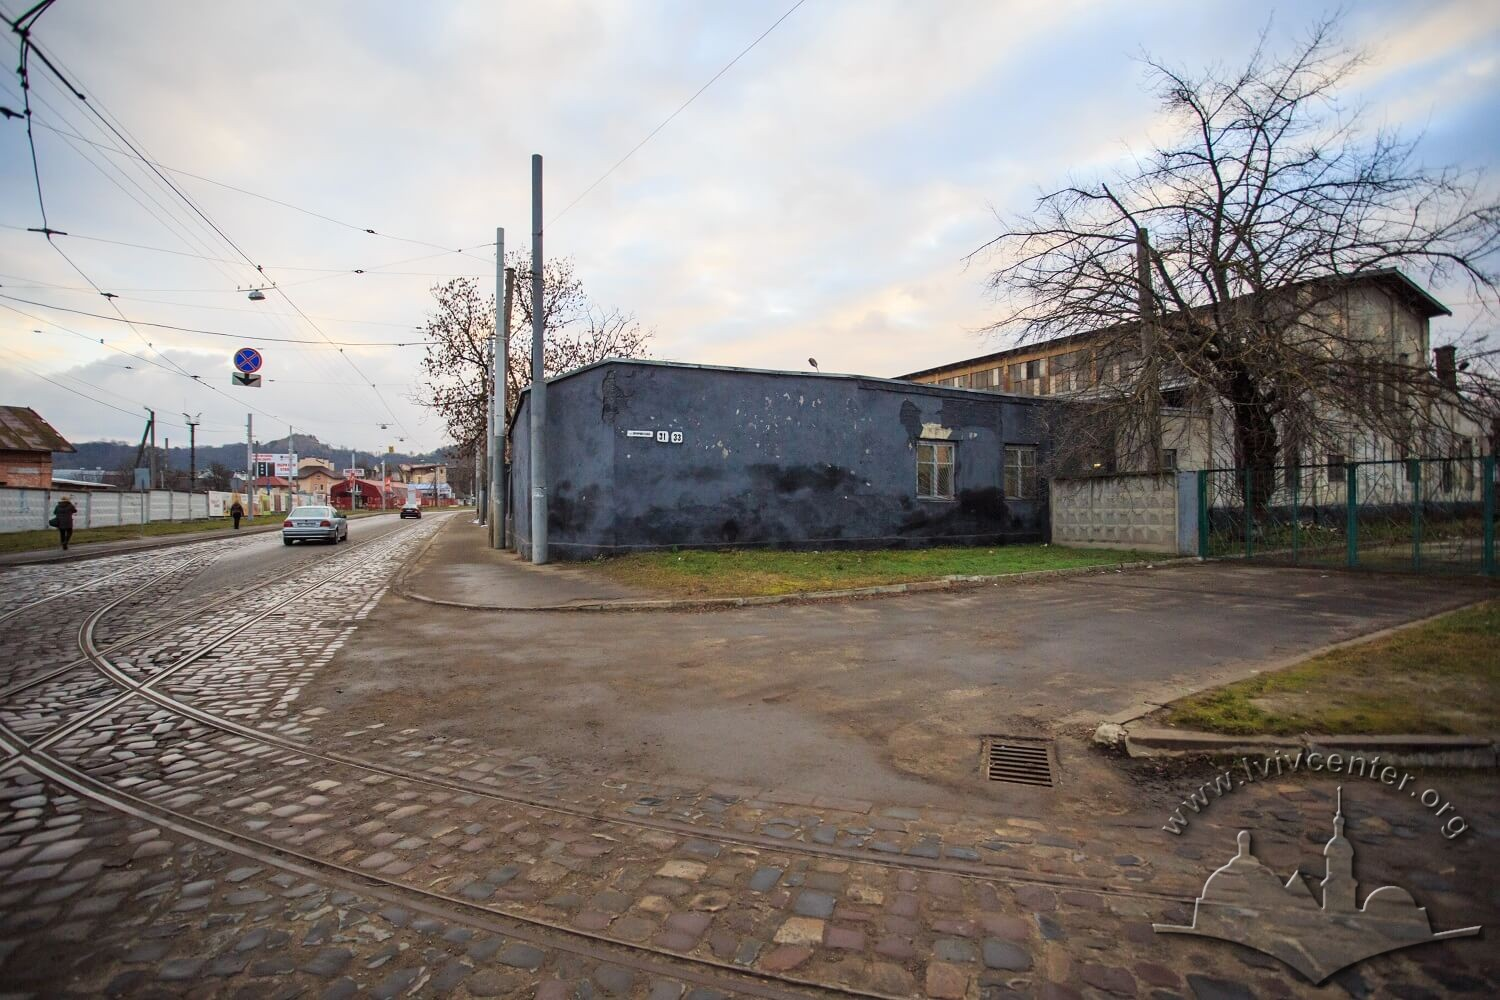 Vul. Promyslova, 29. Behind the fence on the right – the tram depot building which does not function today/Photo courtesy of Nazarii Parkhomyk, 2015